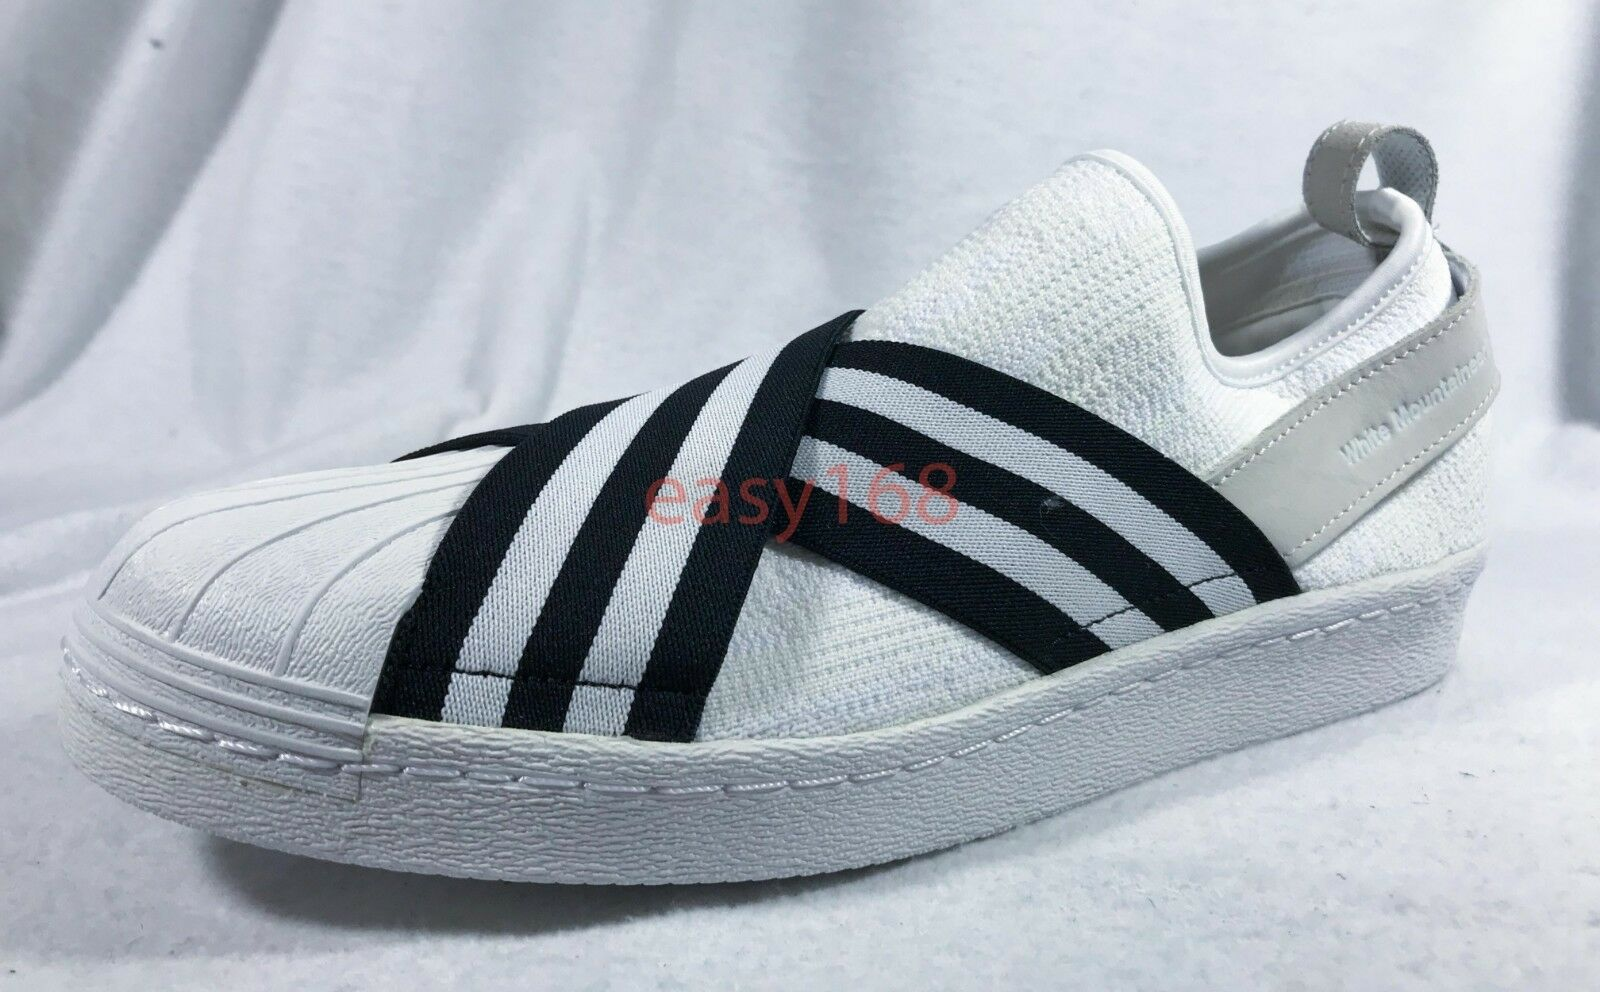 New Adidas Superstar Black Slip On Sz 10.5 Men's BY2881 Black Superstar White Mountaineering 29ff90